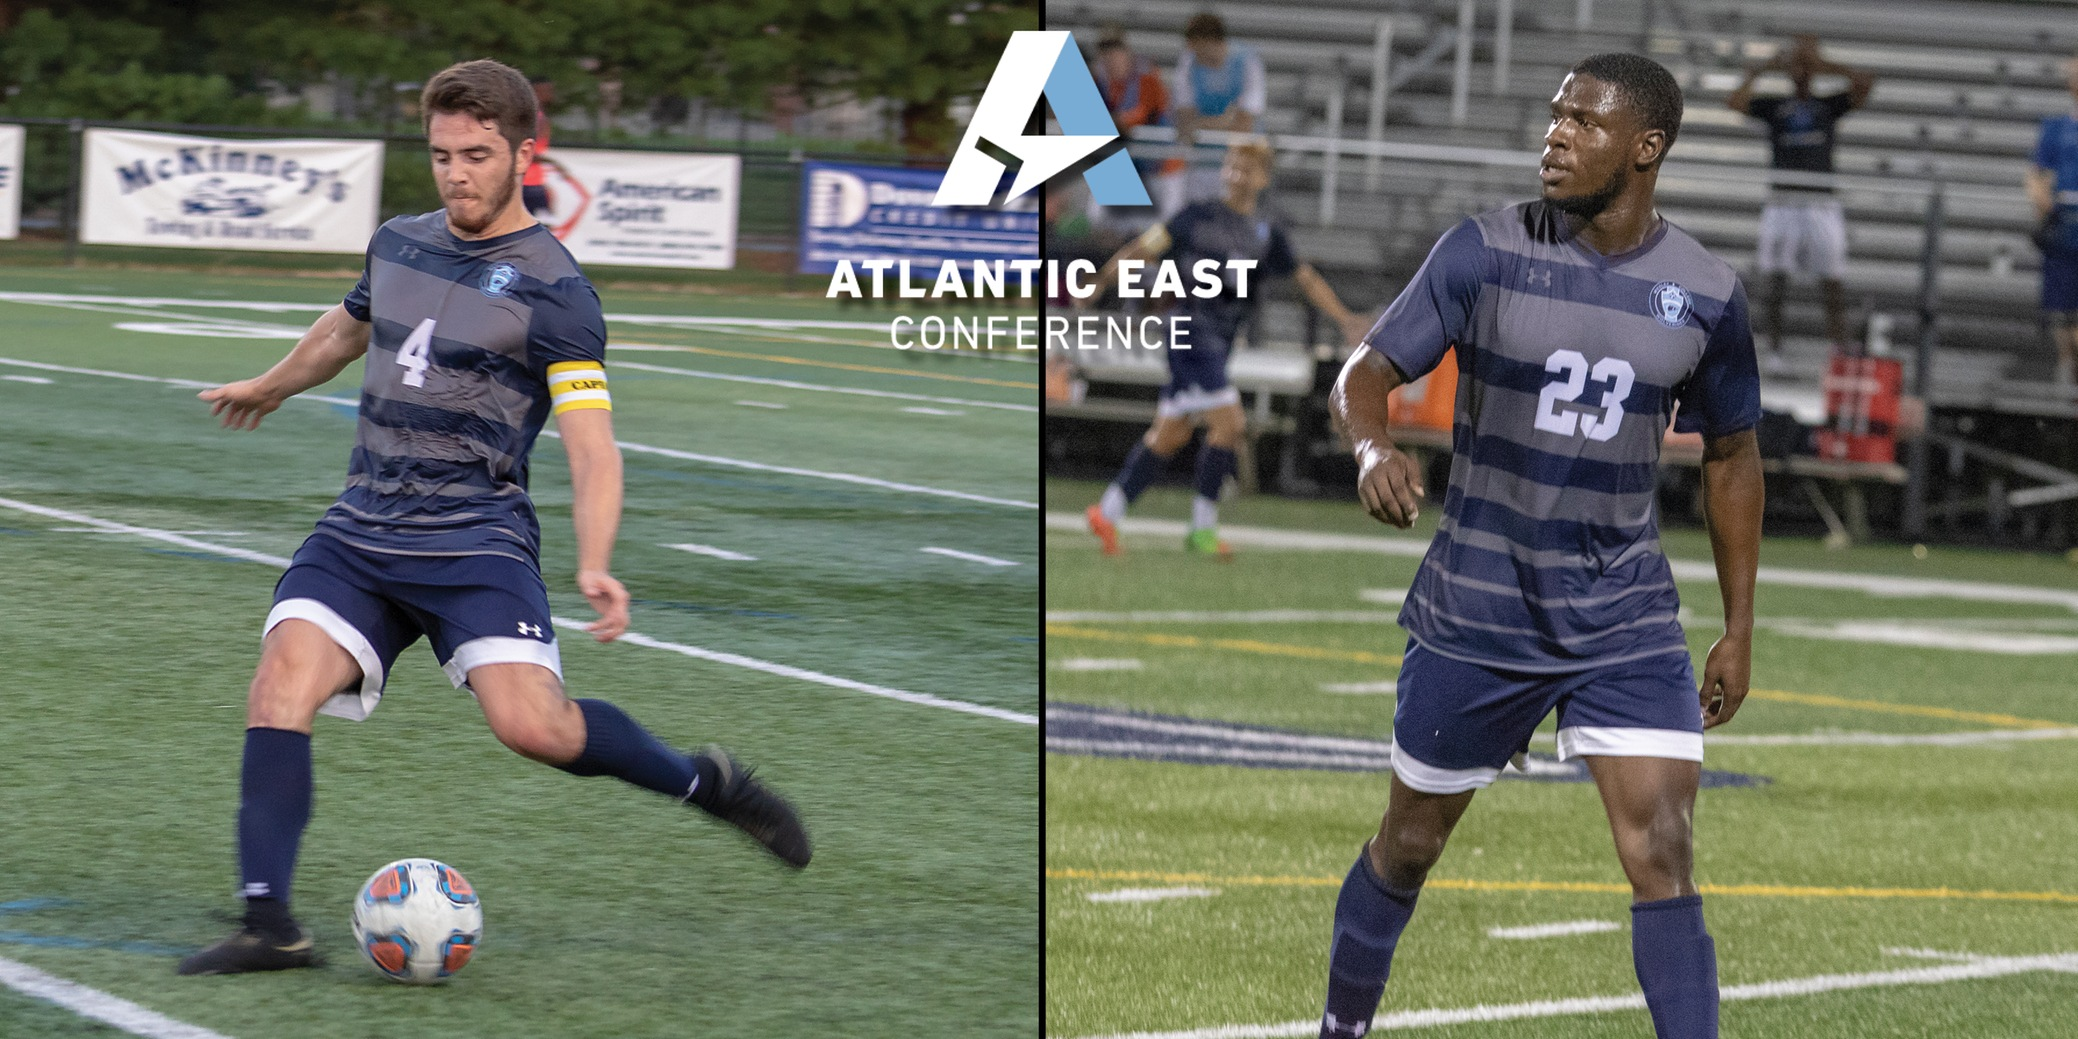 Dina, Ikwuagwu collect Atlantic East Player of the Year awards; Five earn All-Conference